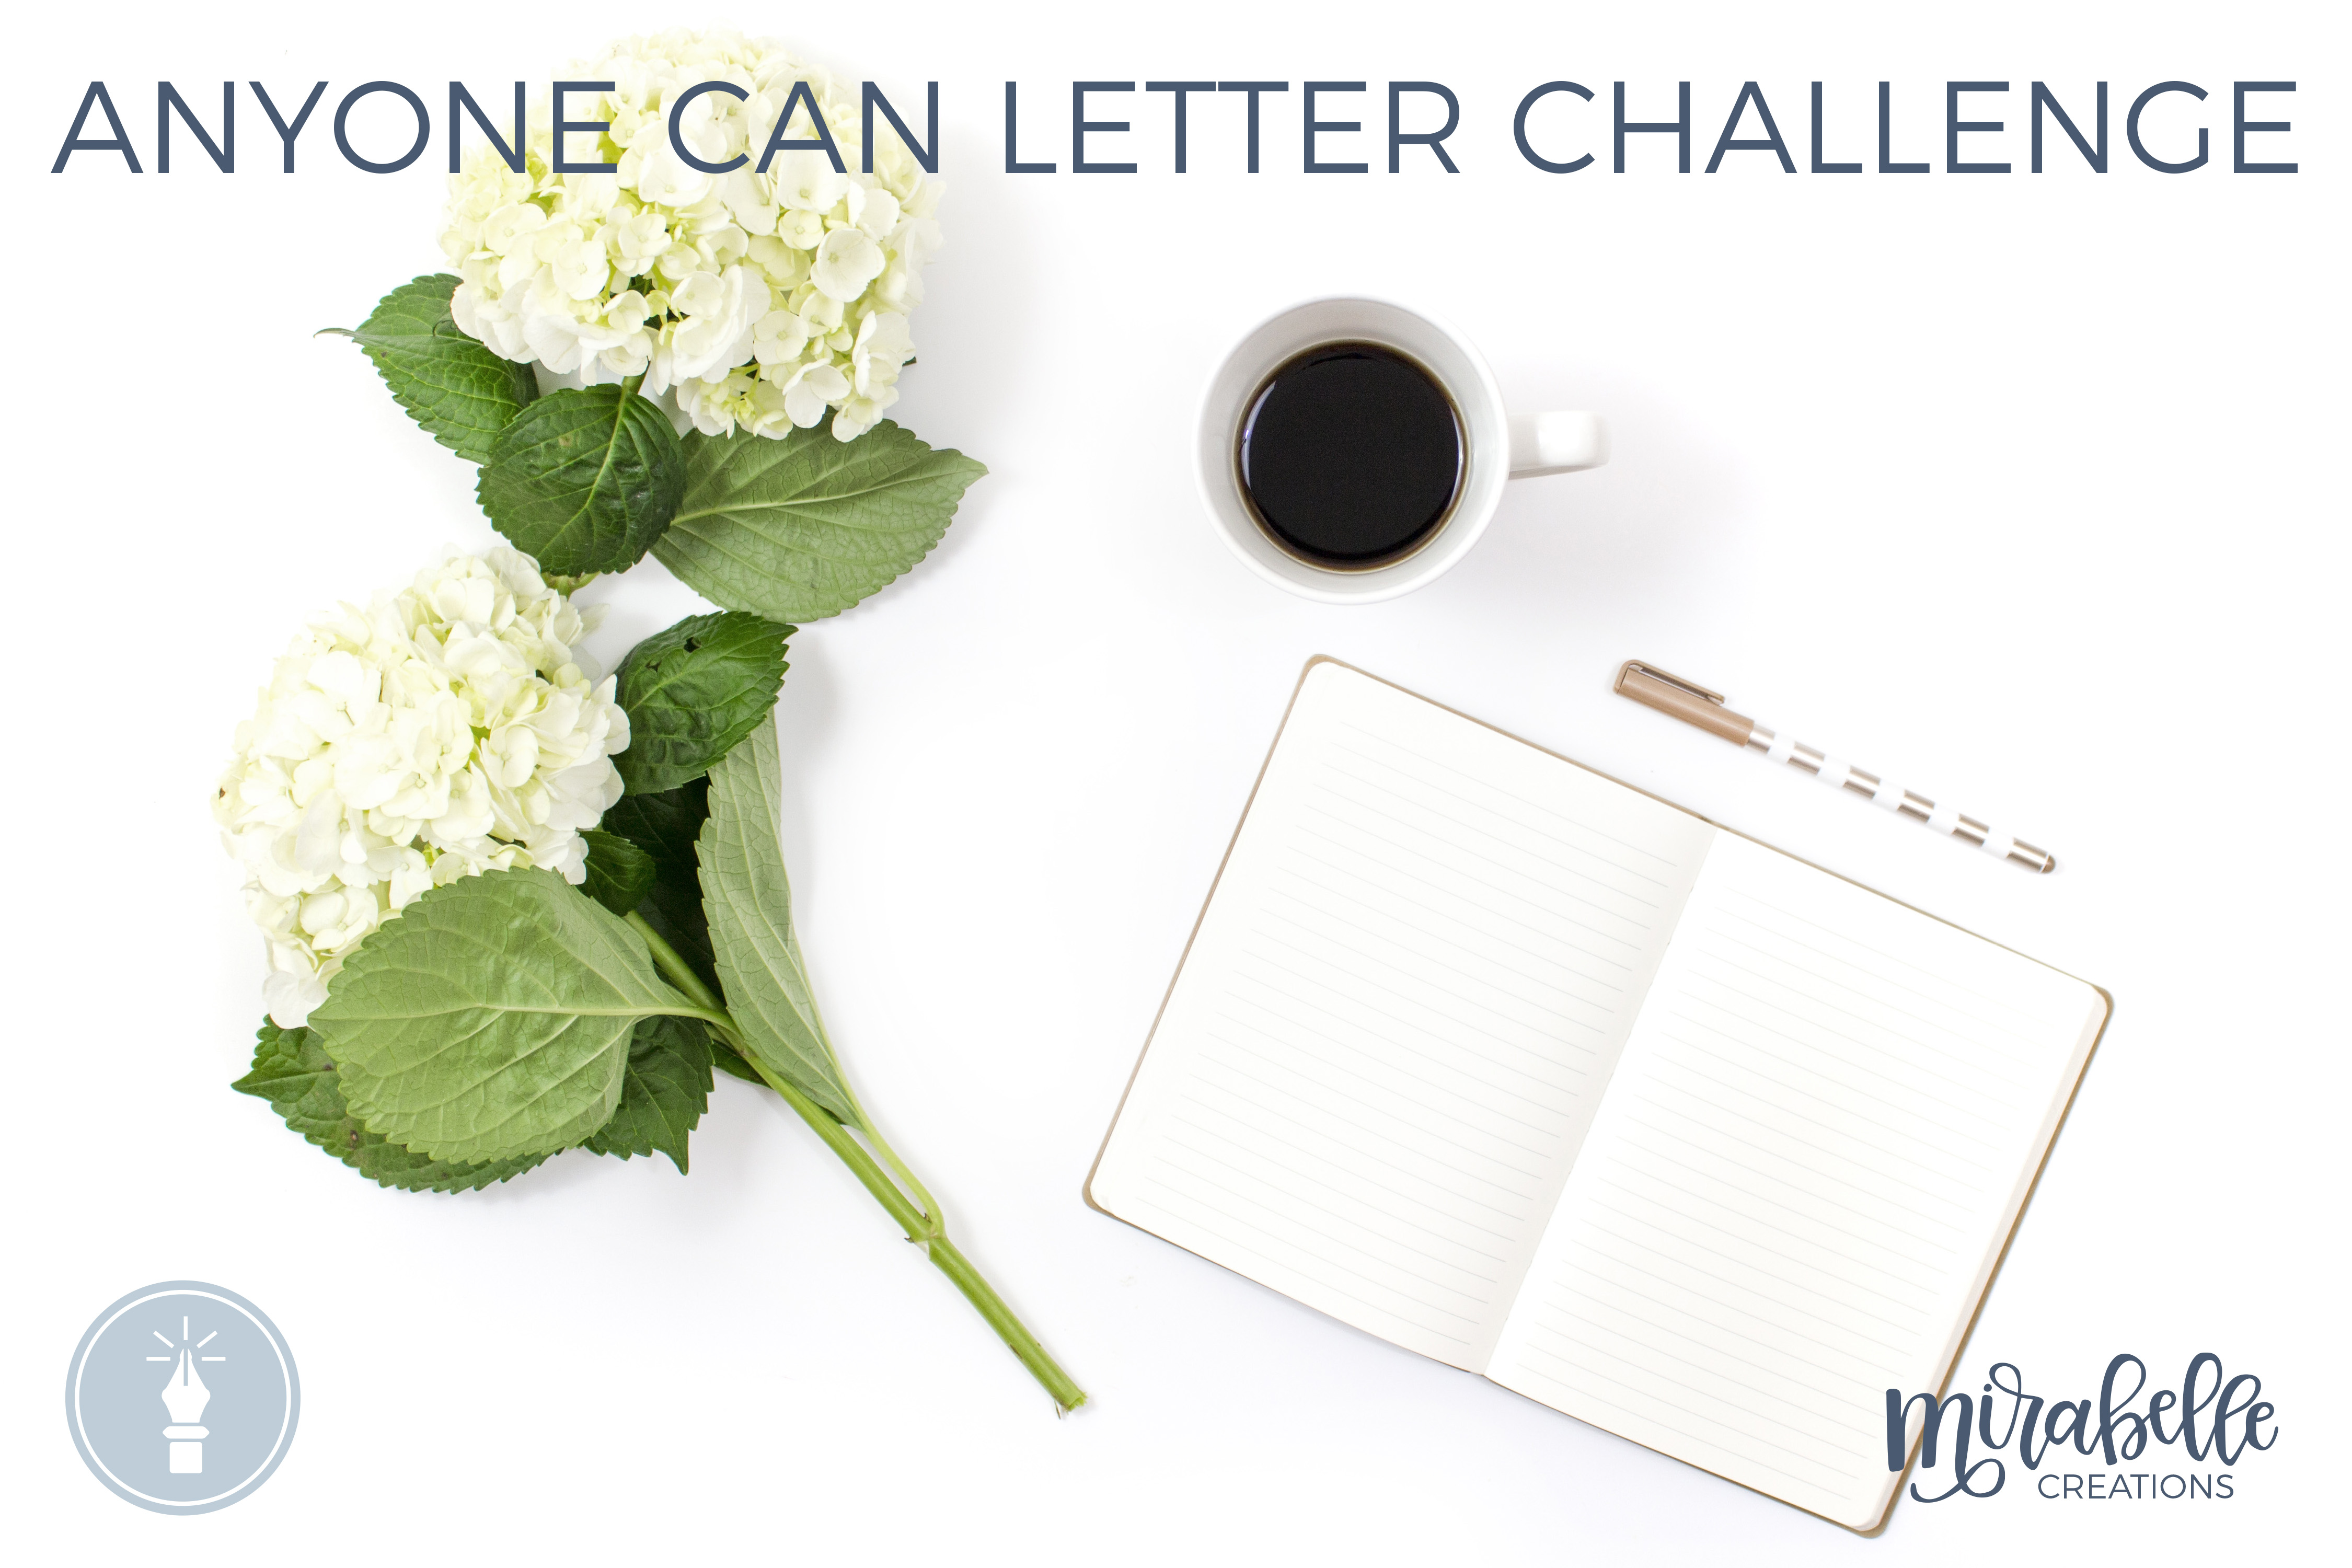 The #AnyoneCanLetter Challenge